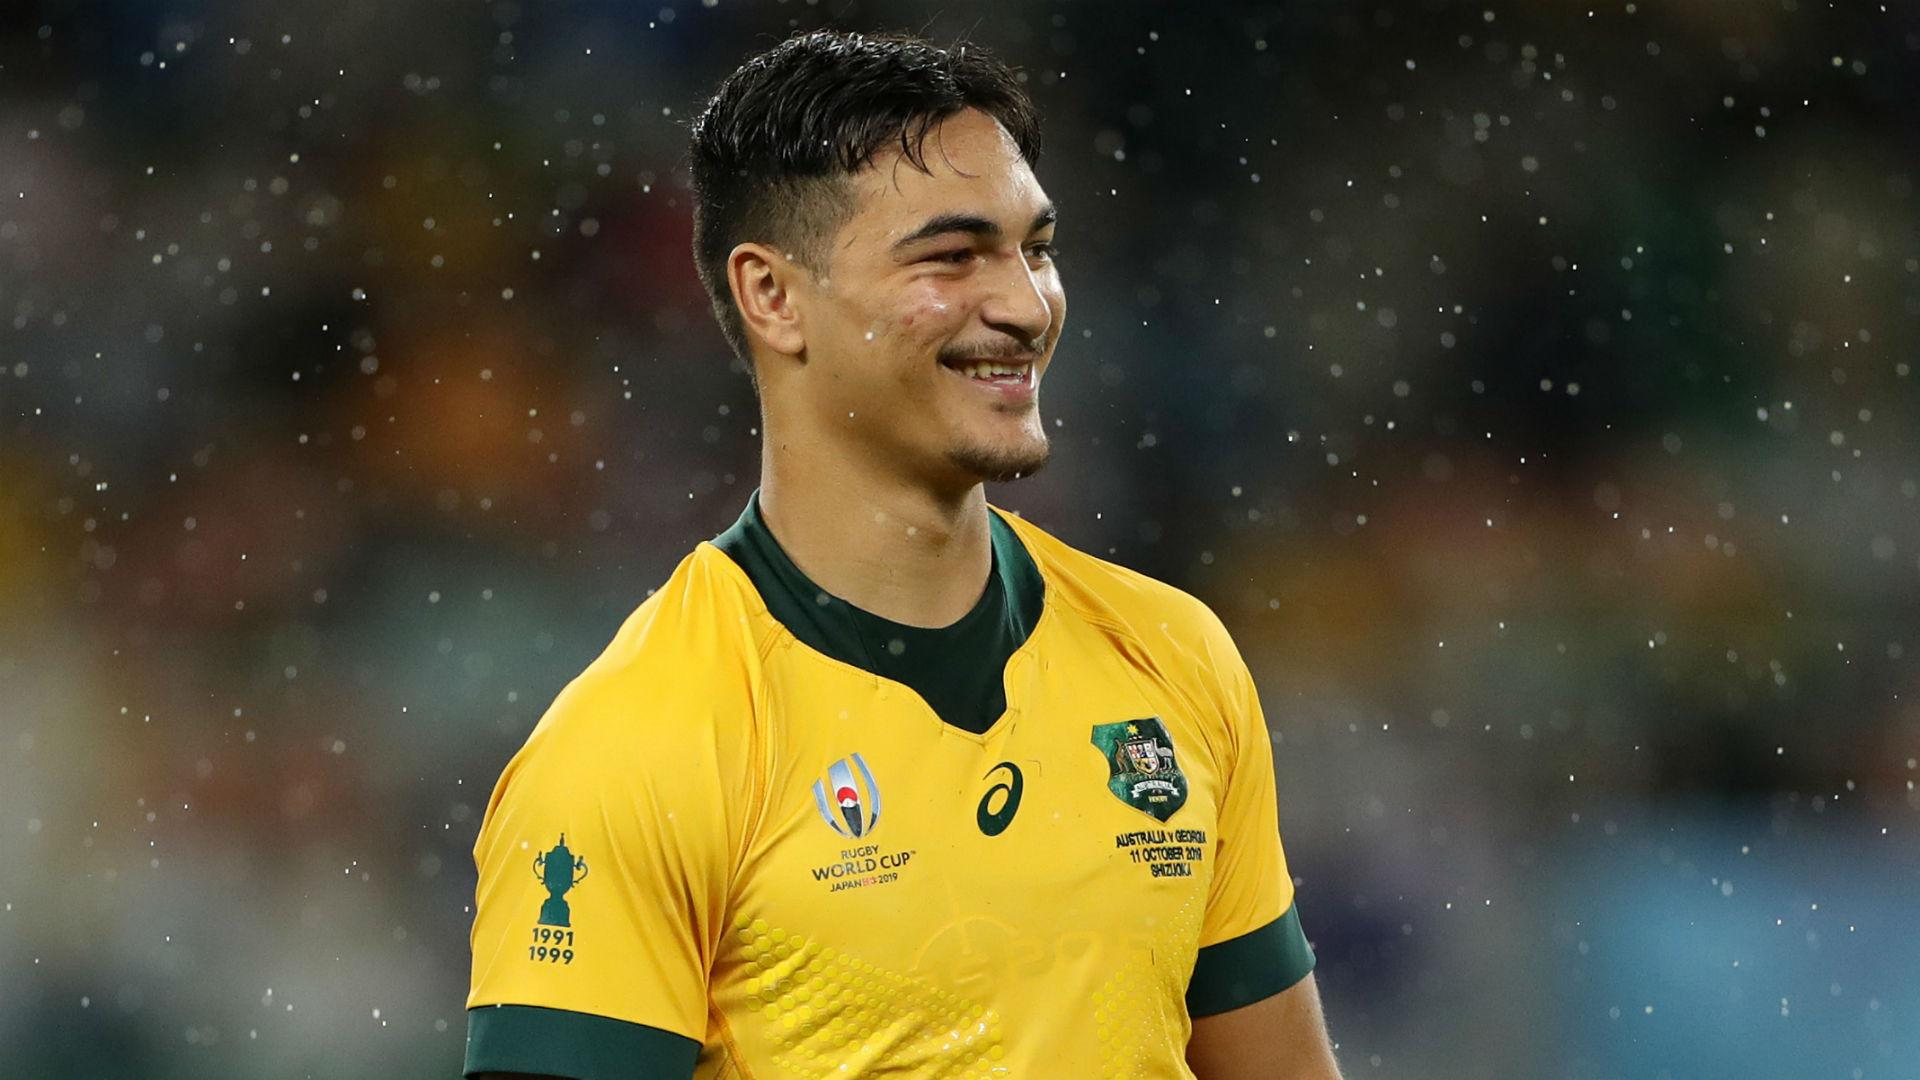 Rugby World Cup 2019 Wallabies Teenager Petaia To Face England At Centre